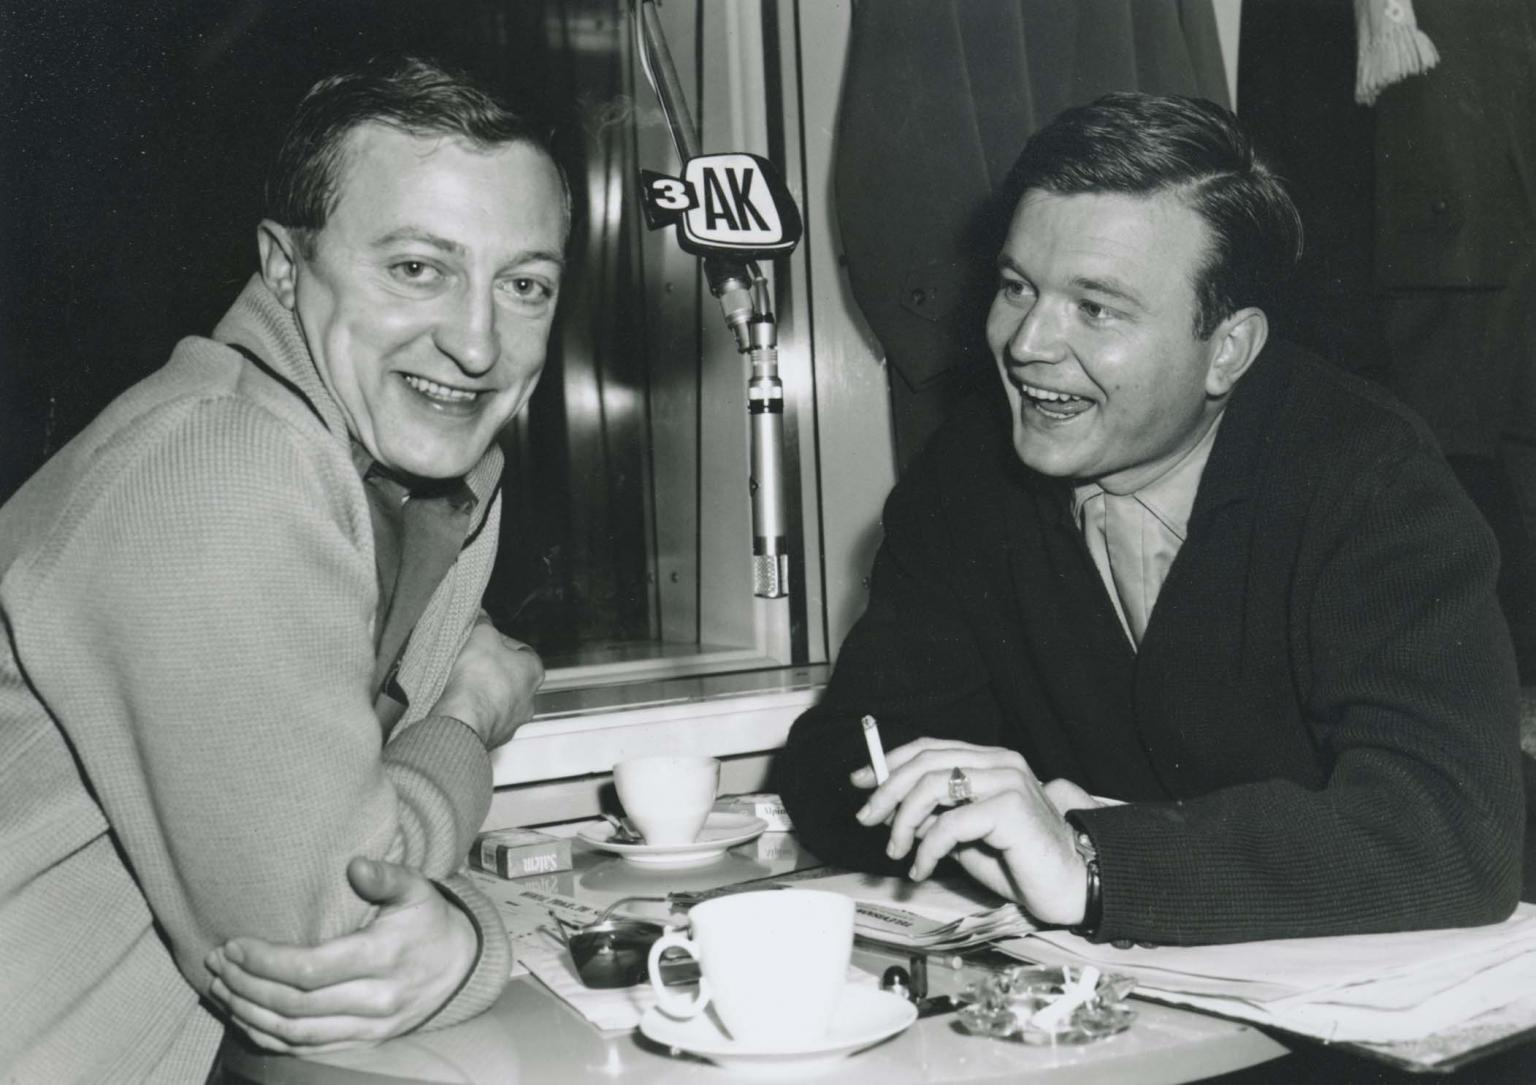 Graham Kennedy smiling to camera sitting opposite Bert Newton in front of a 3AK microphone